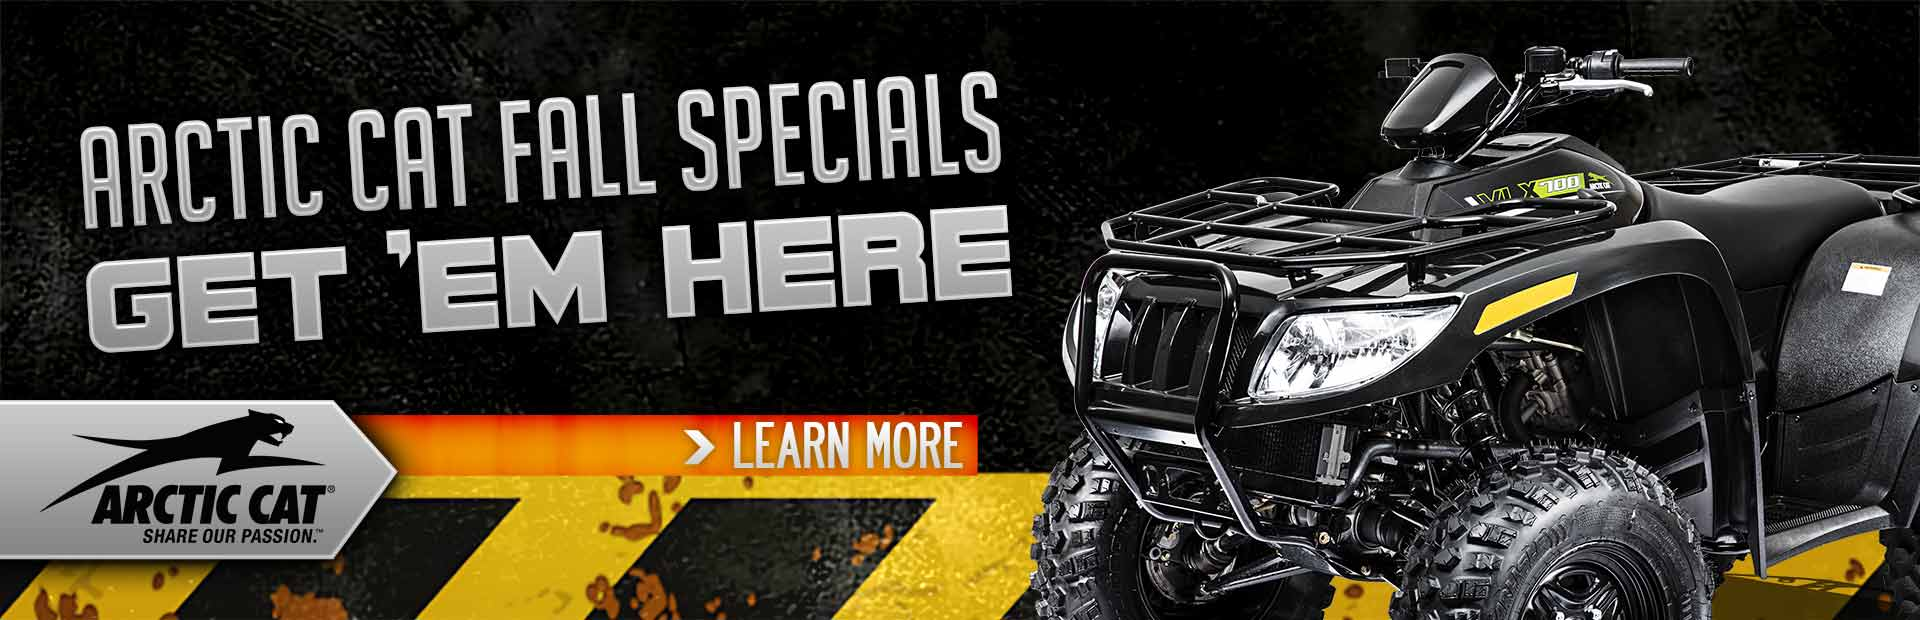 Fall Specials: Click here for the Arctic Cat ATV lineup.